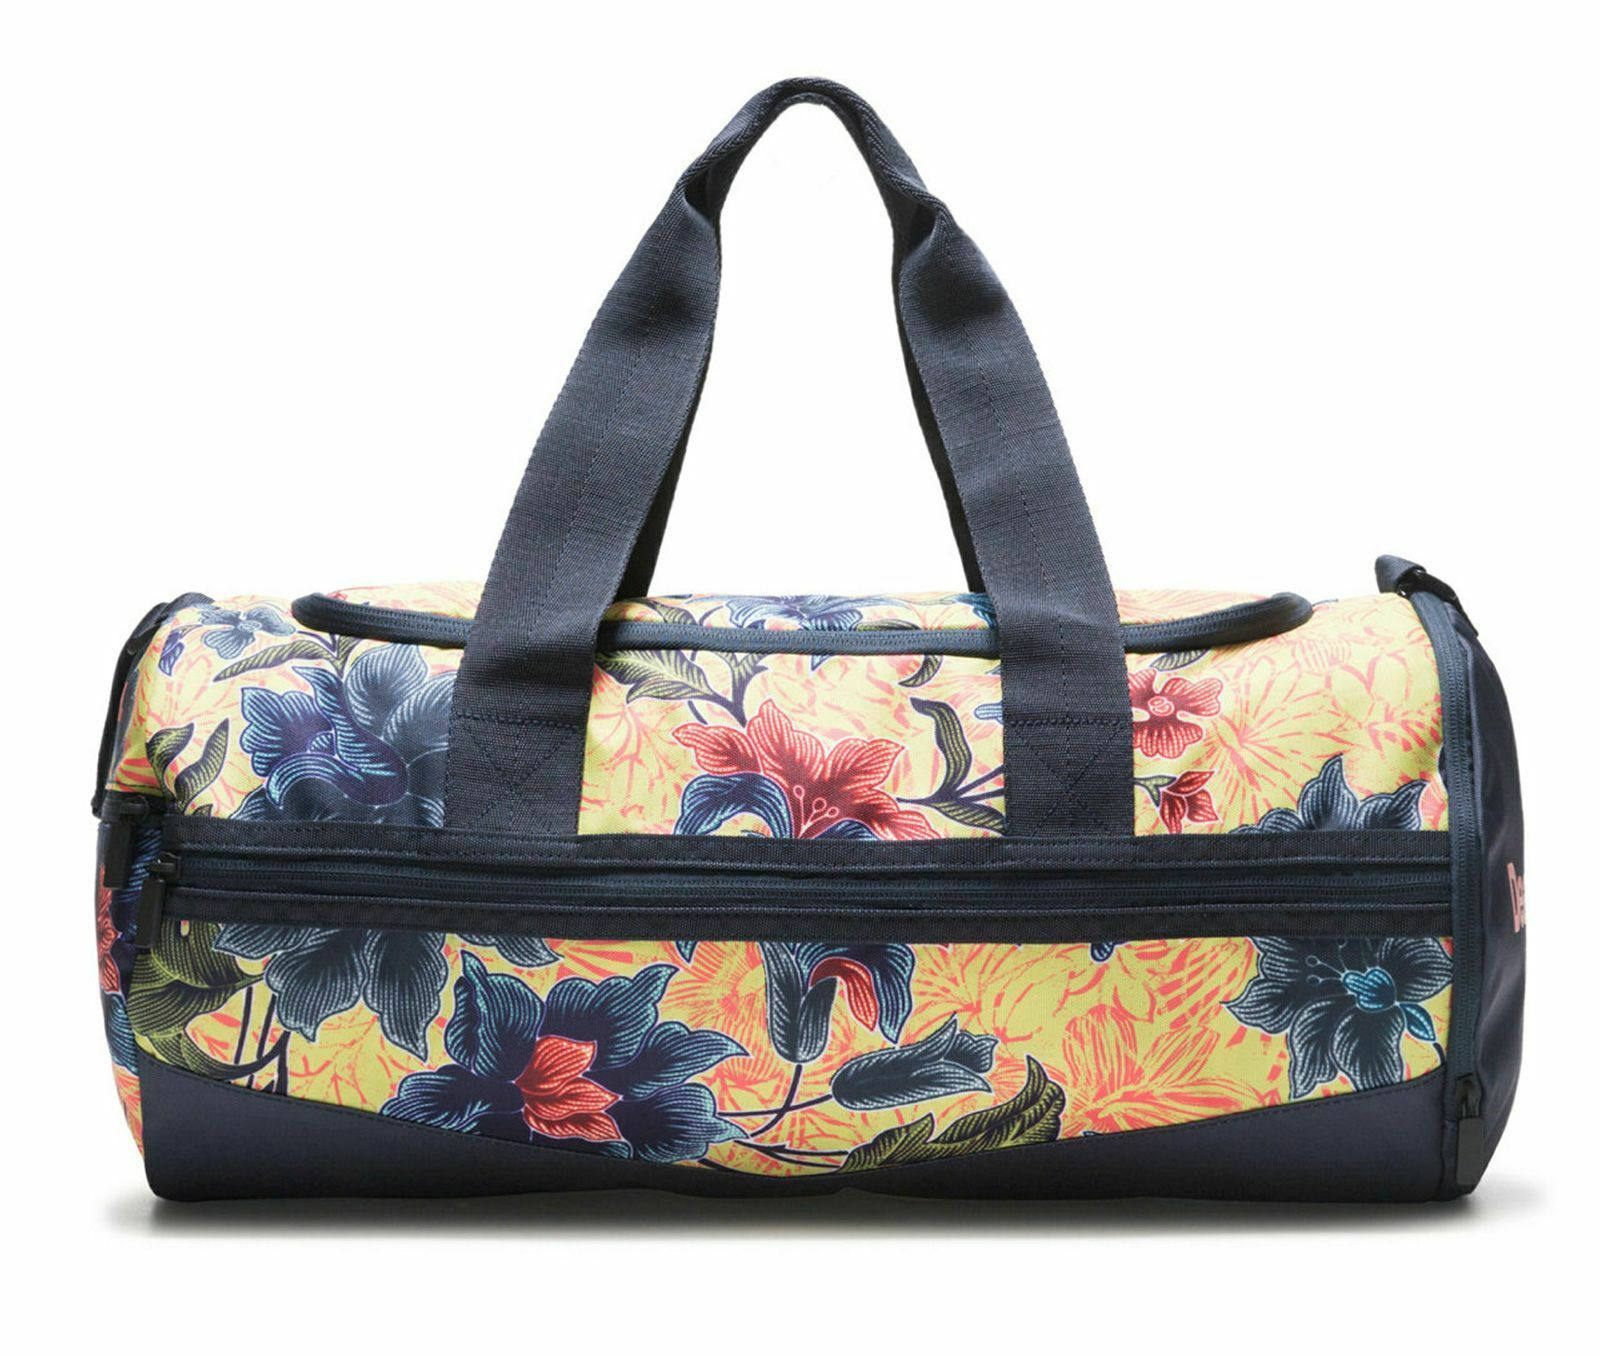 Desigual Tube geopatch  Sports Bag Lima bluee Yellow New  clients first reputation first